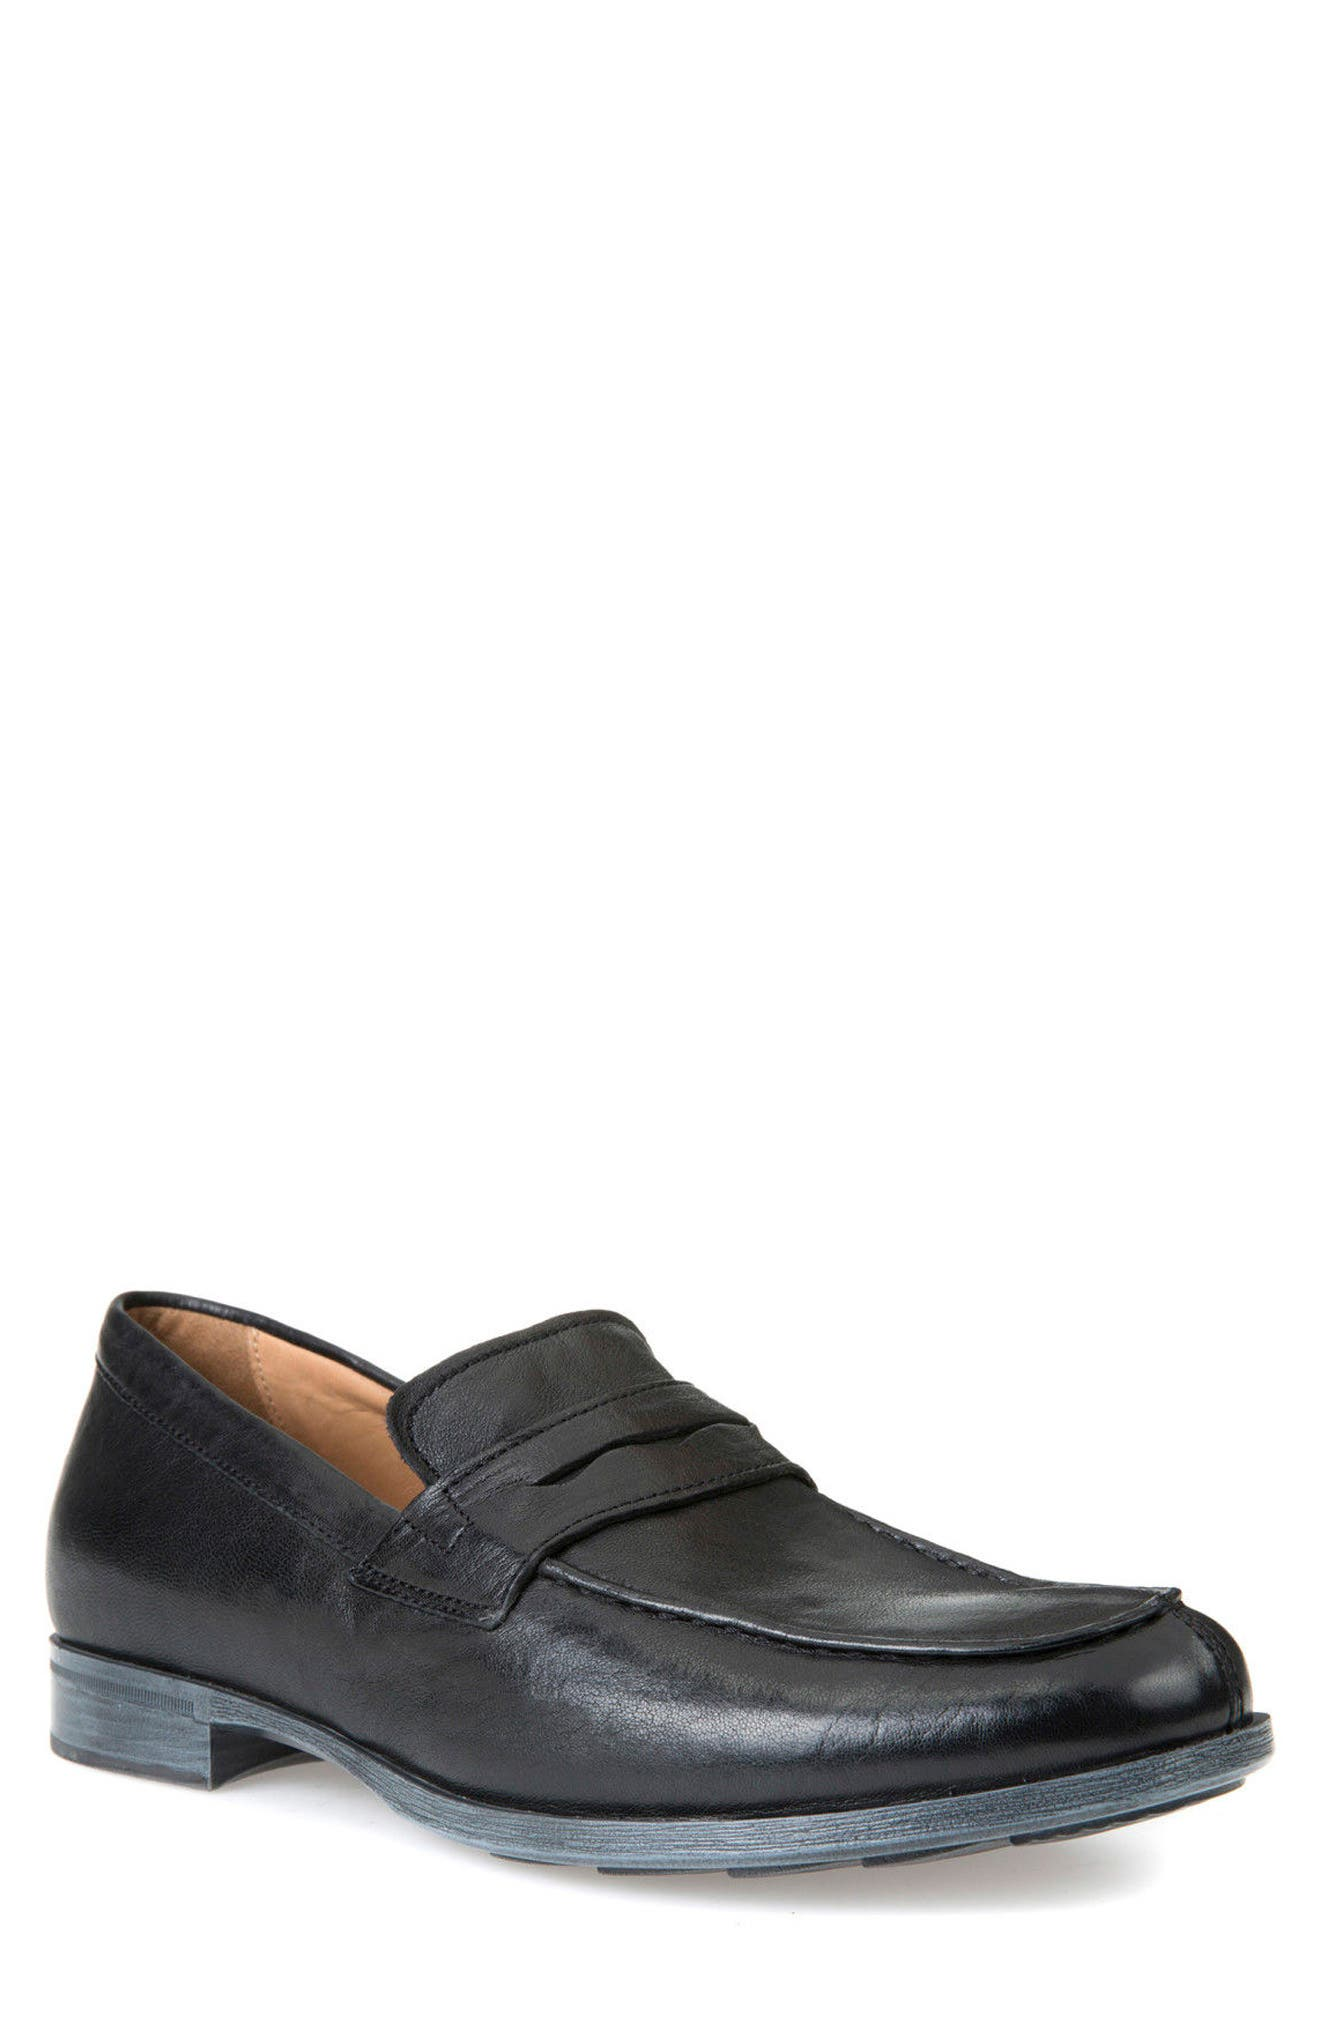 Besmington 6 Penny Loafer,                             Main thumbnail 1, color,                             Black Leather